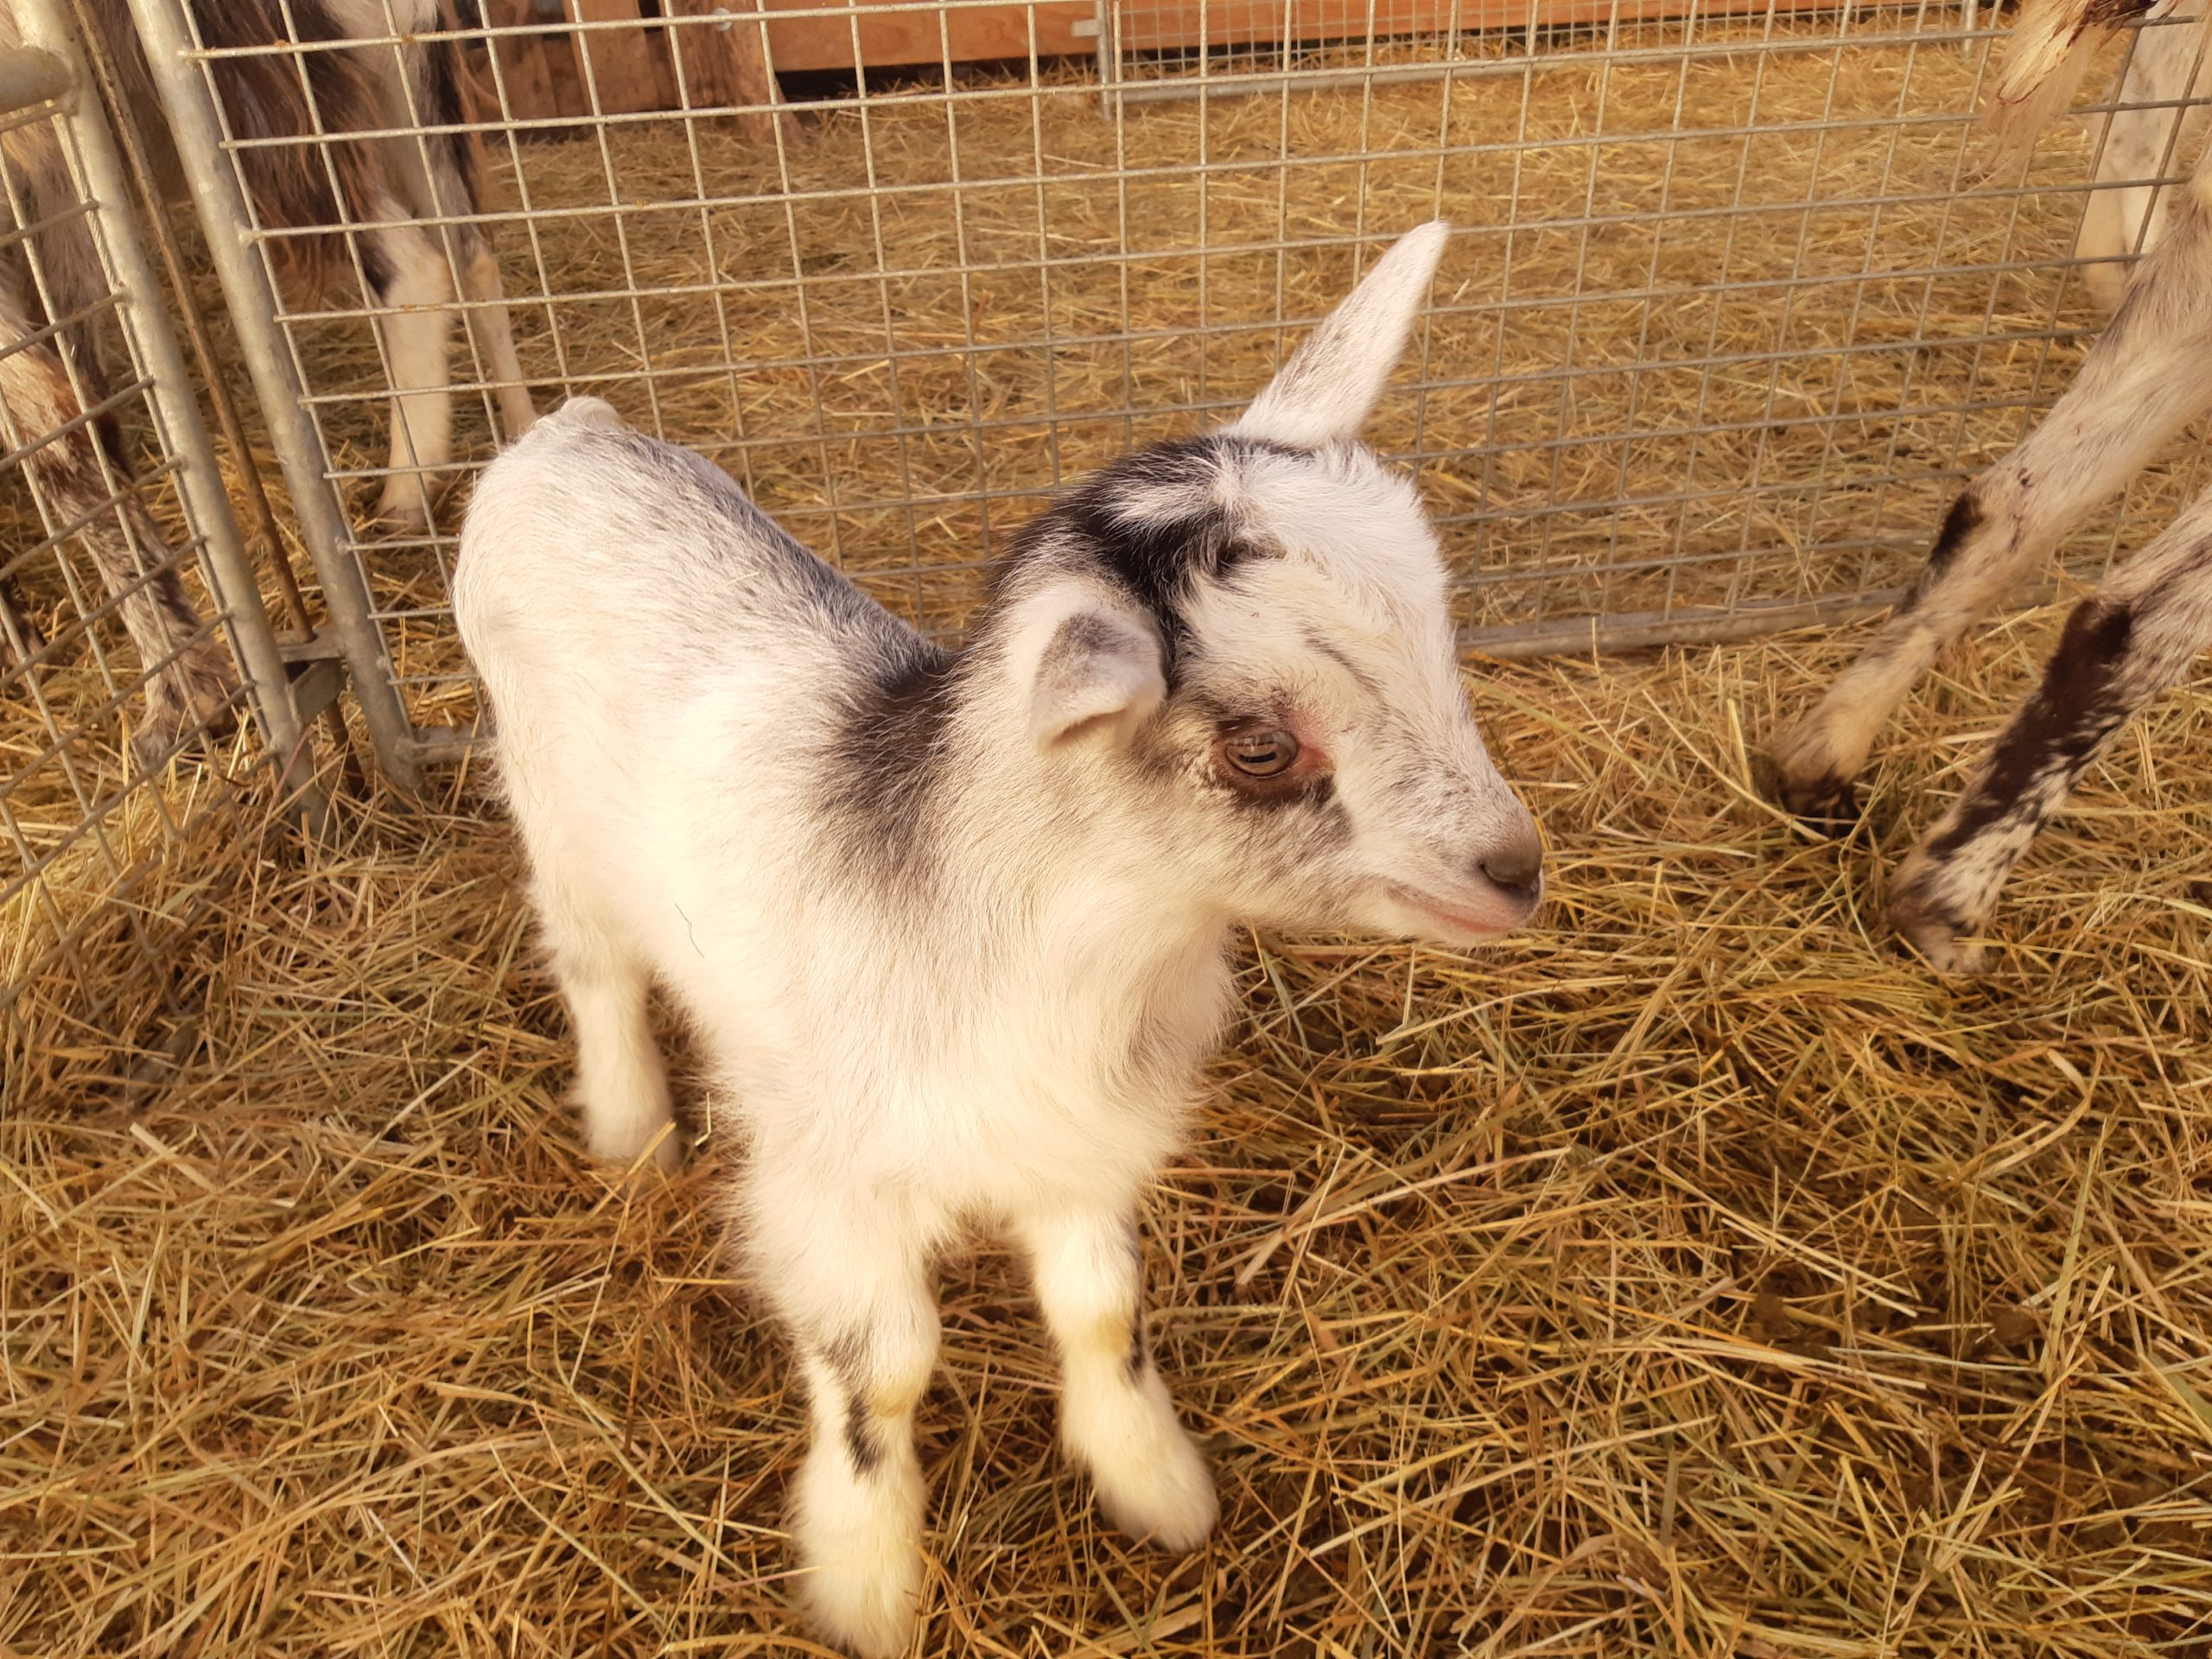 A baby goat in the hay